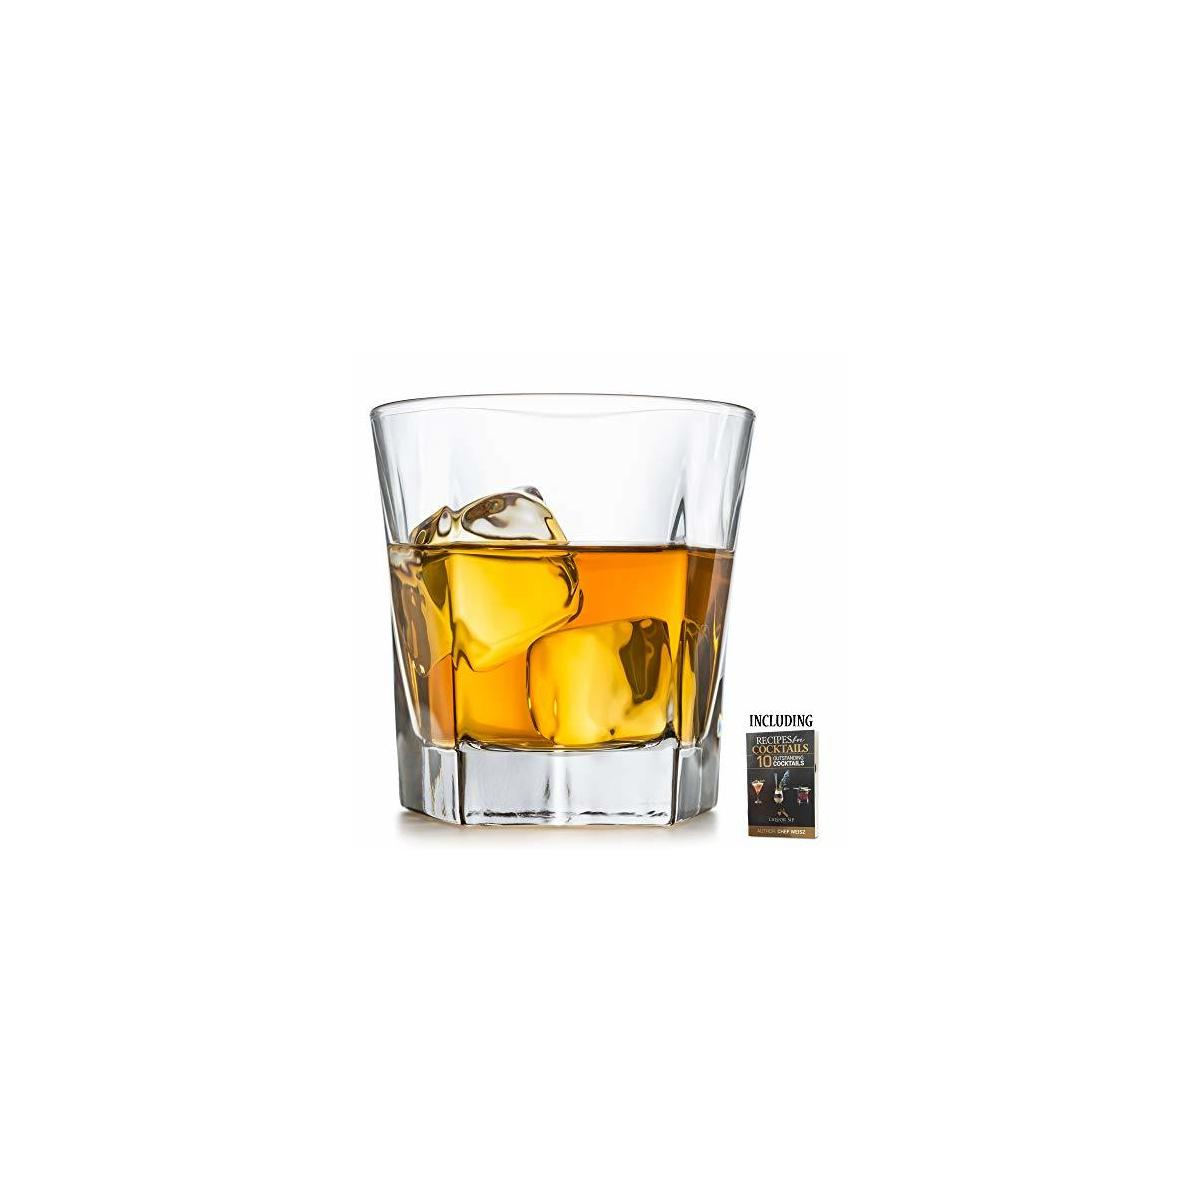 Whiskey Glass Set of 2 | Unique and Elegant Design | 12 oz Lead-Free scotch glasses | Strong Base whiskey glasses | 10 Bonus Refreshing Cocktail Recipes Enclosed in A Stylish Gift Box.